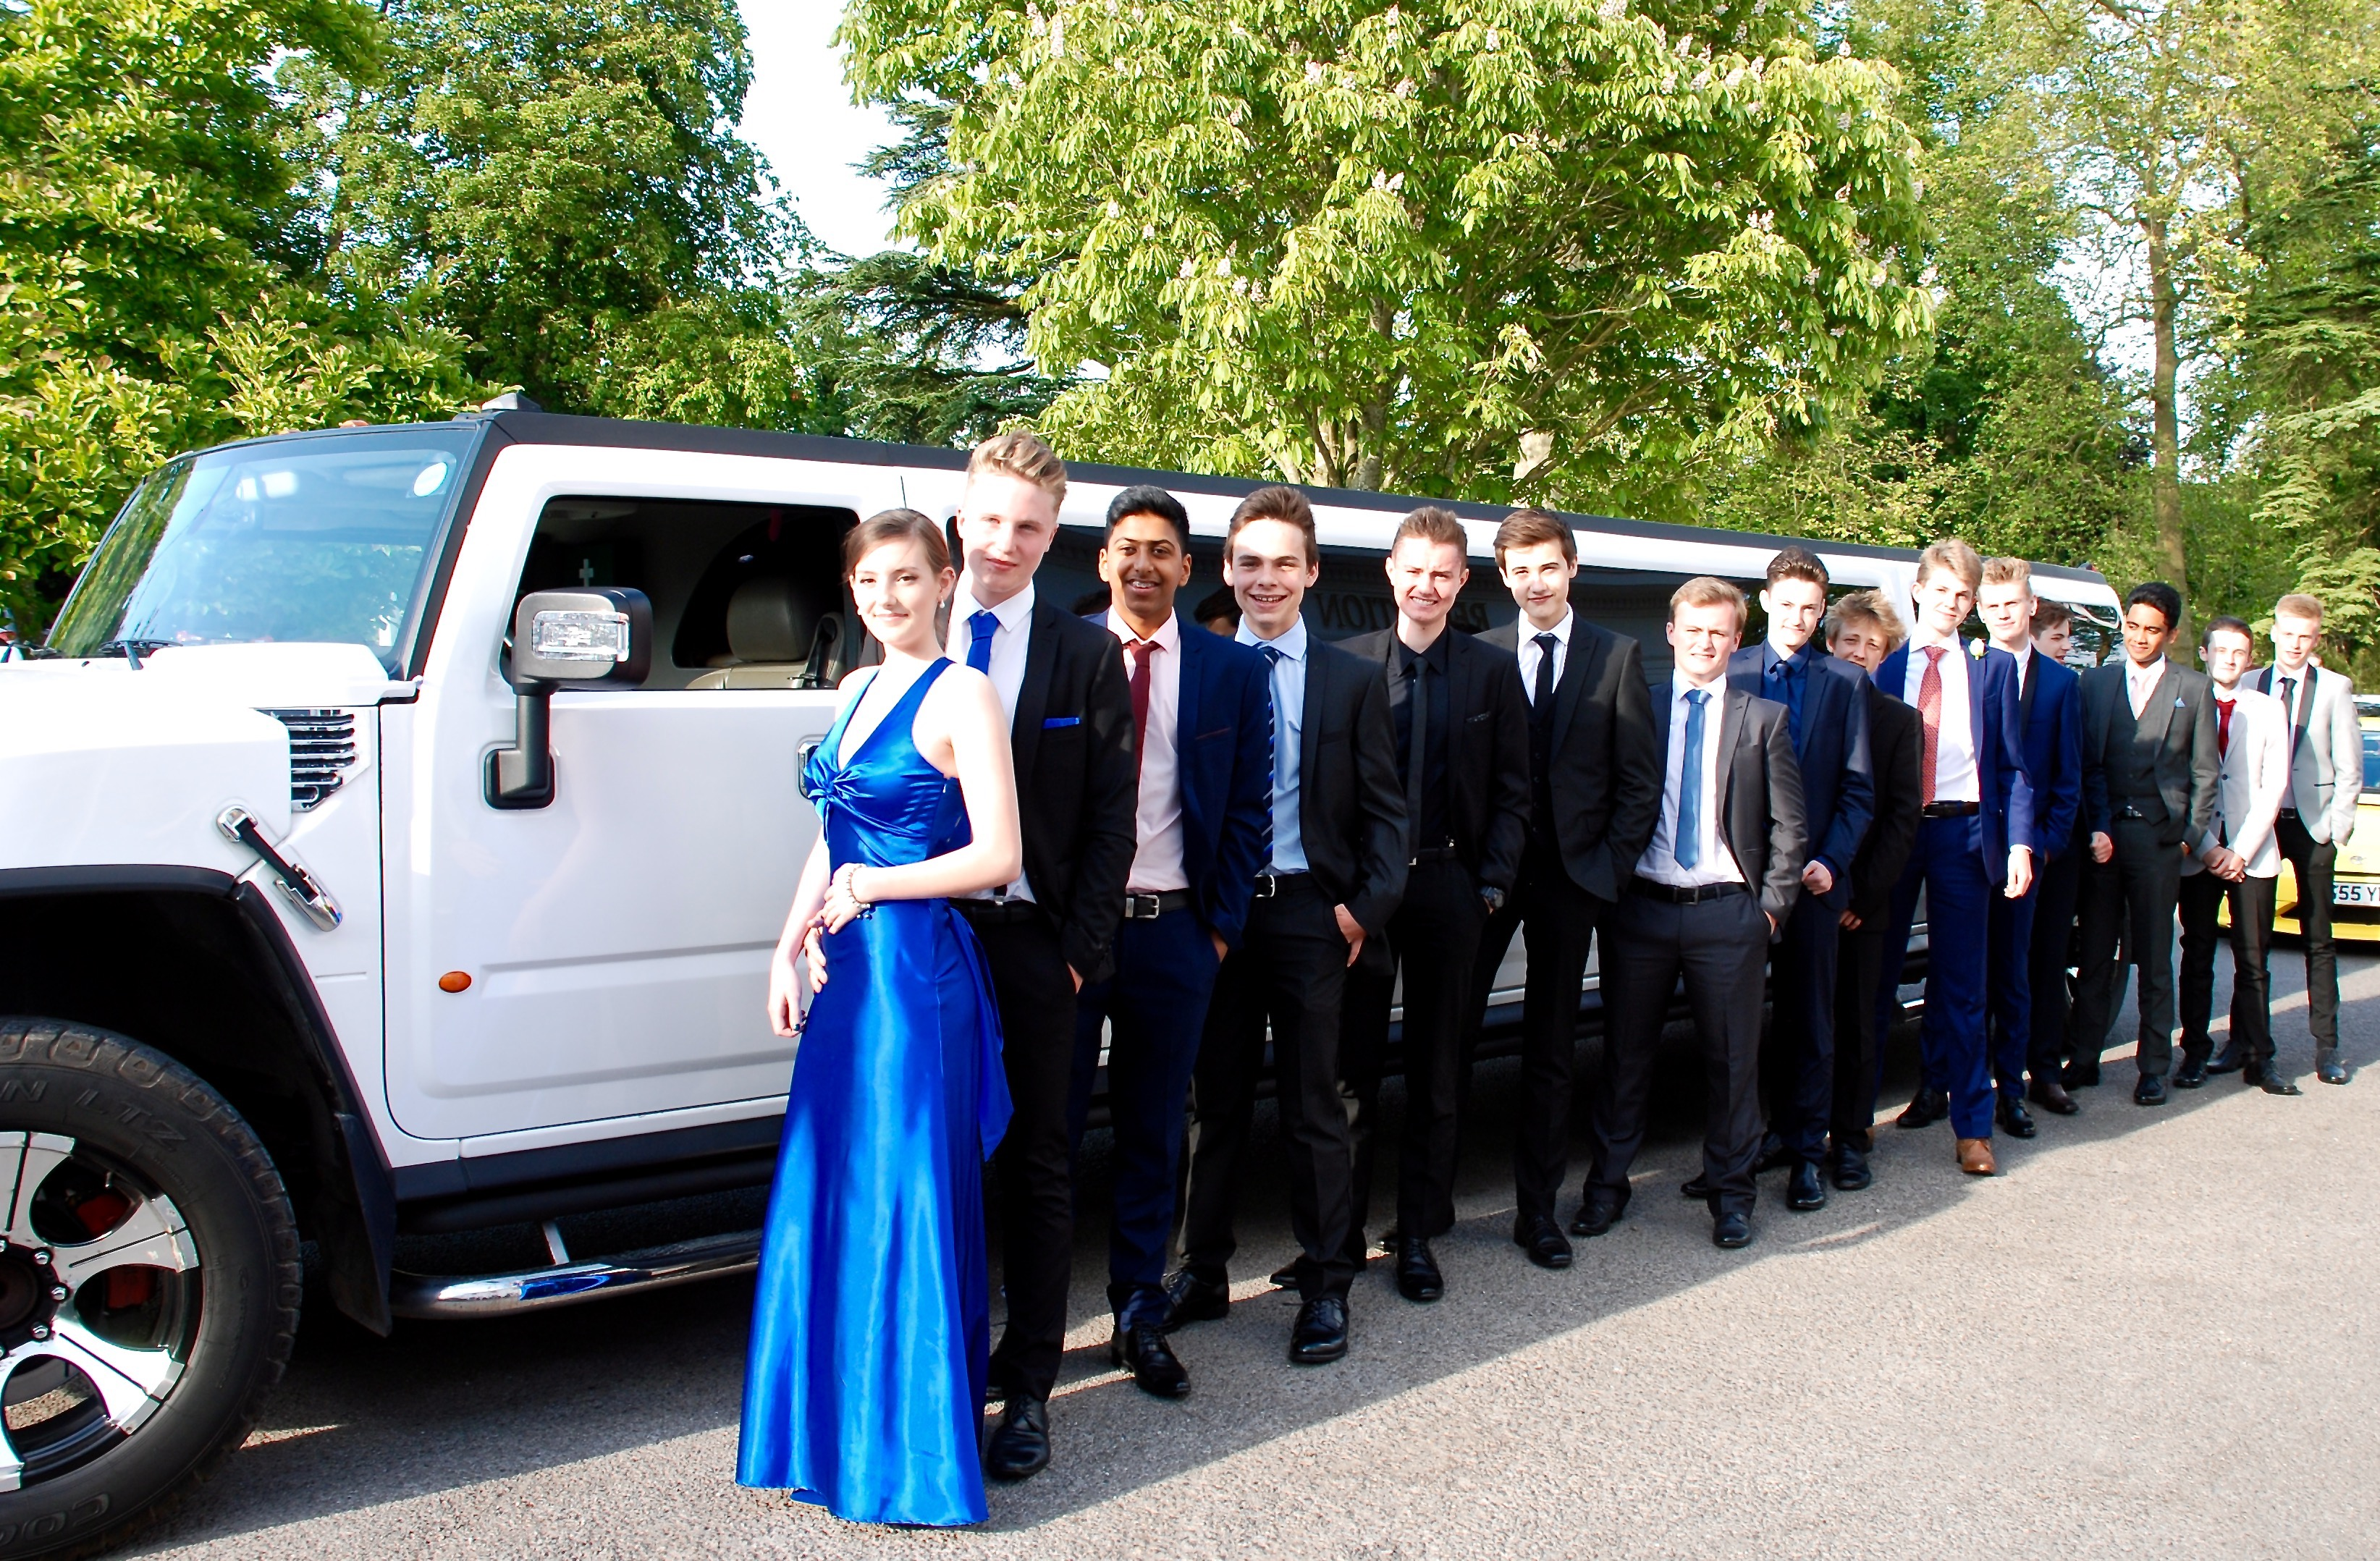 Limo Prom Limousine And Prom Essay Sample